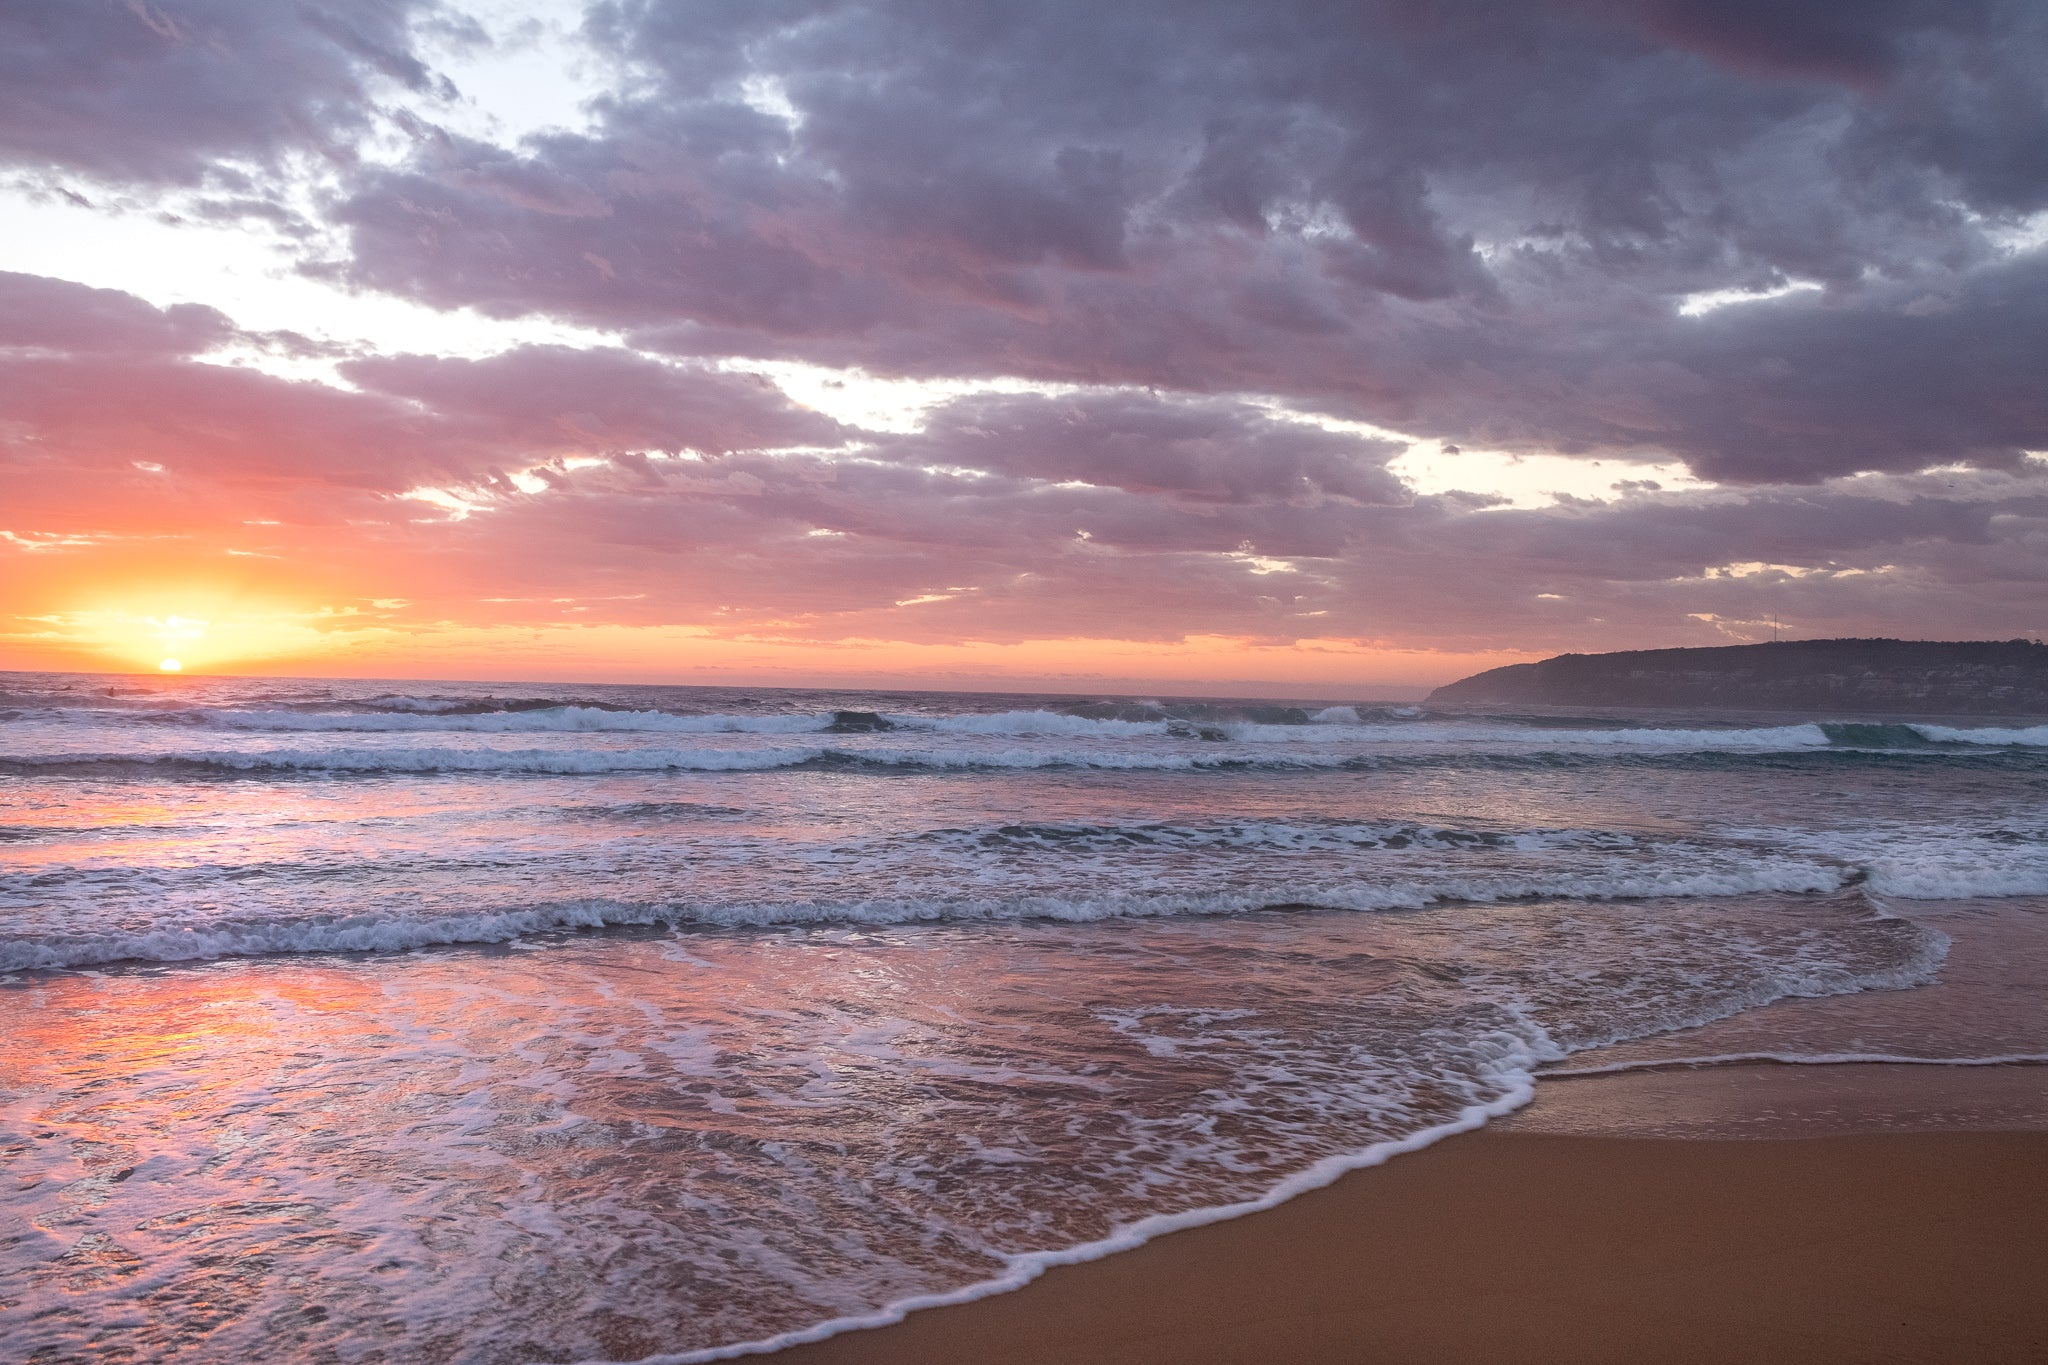 Sunrise photo from 15th October 2019 at Manly Beach, Sydney